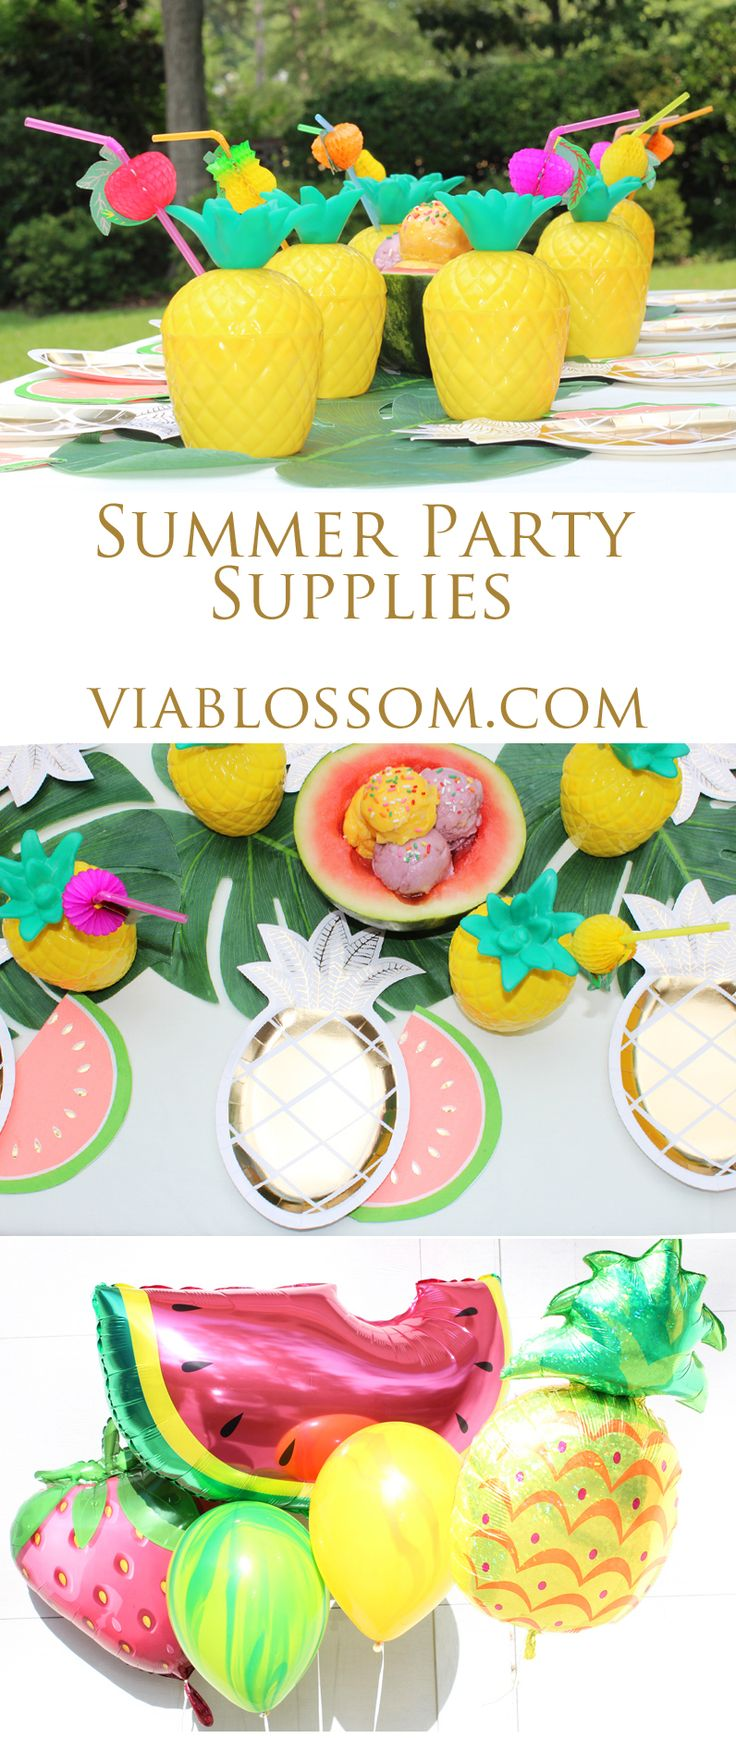 Must Have Pineapple Party Supplies Ideas on the Via Blossom Blog! Everything you'll need to throw an amazing Summer Party or Tropical Party, or Flamingo Party or Tutti Frutti Party! Don't Miss out!